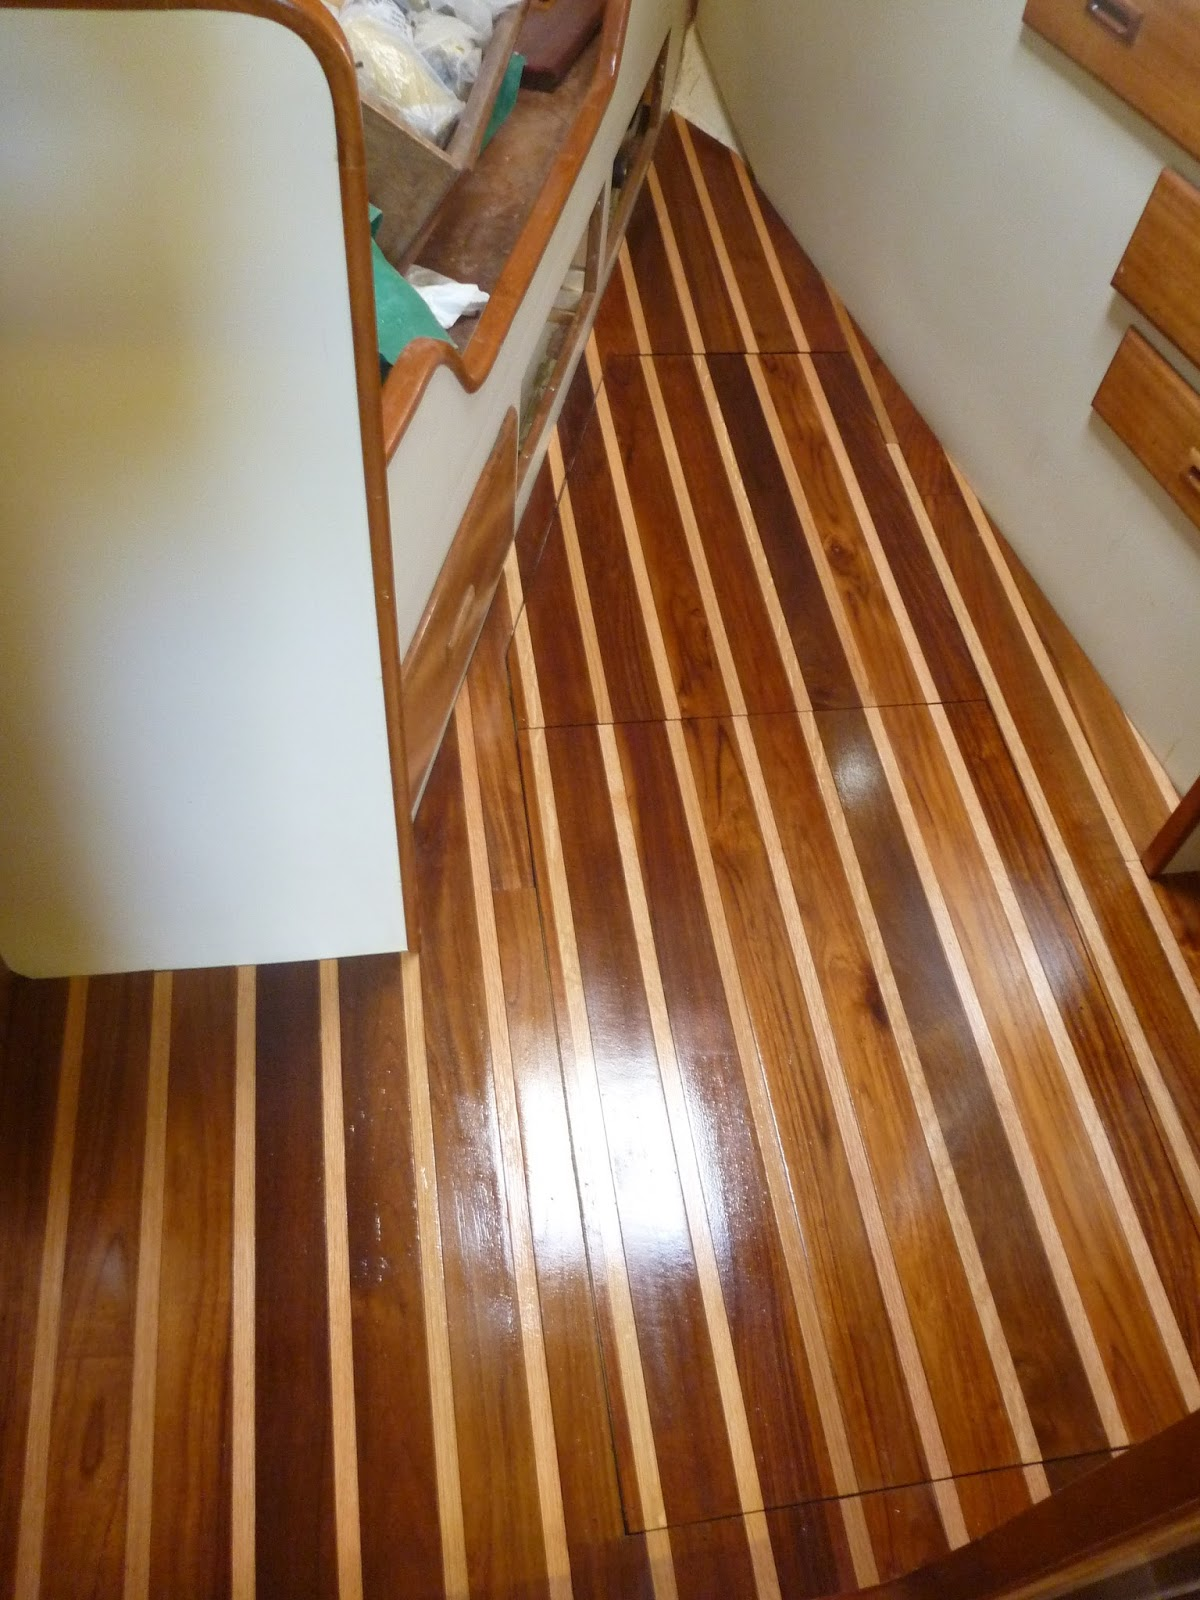 Tung Oil Over Varnish